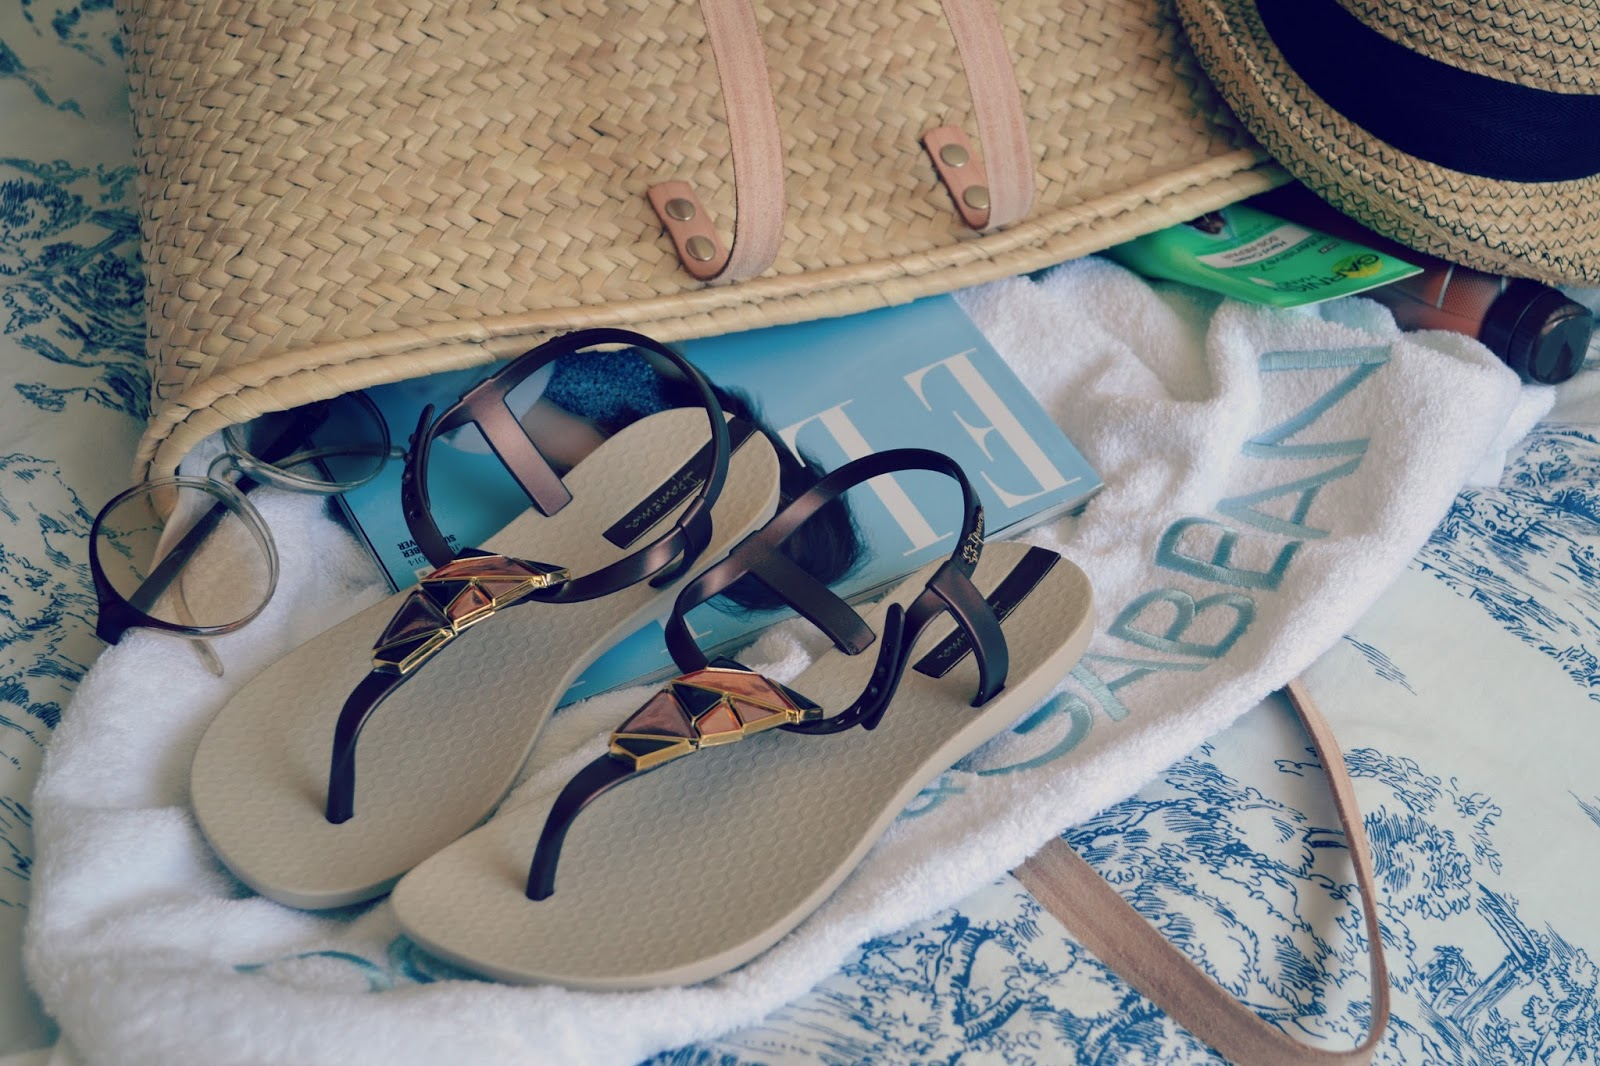 beach bag essentials elle magazine ipanema sandals vintage sunglasses